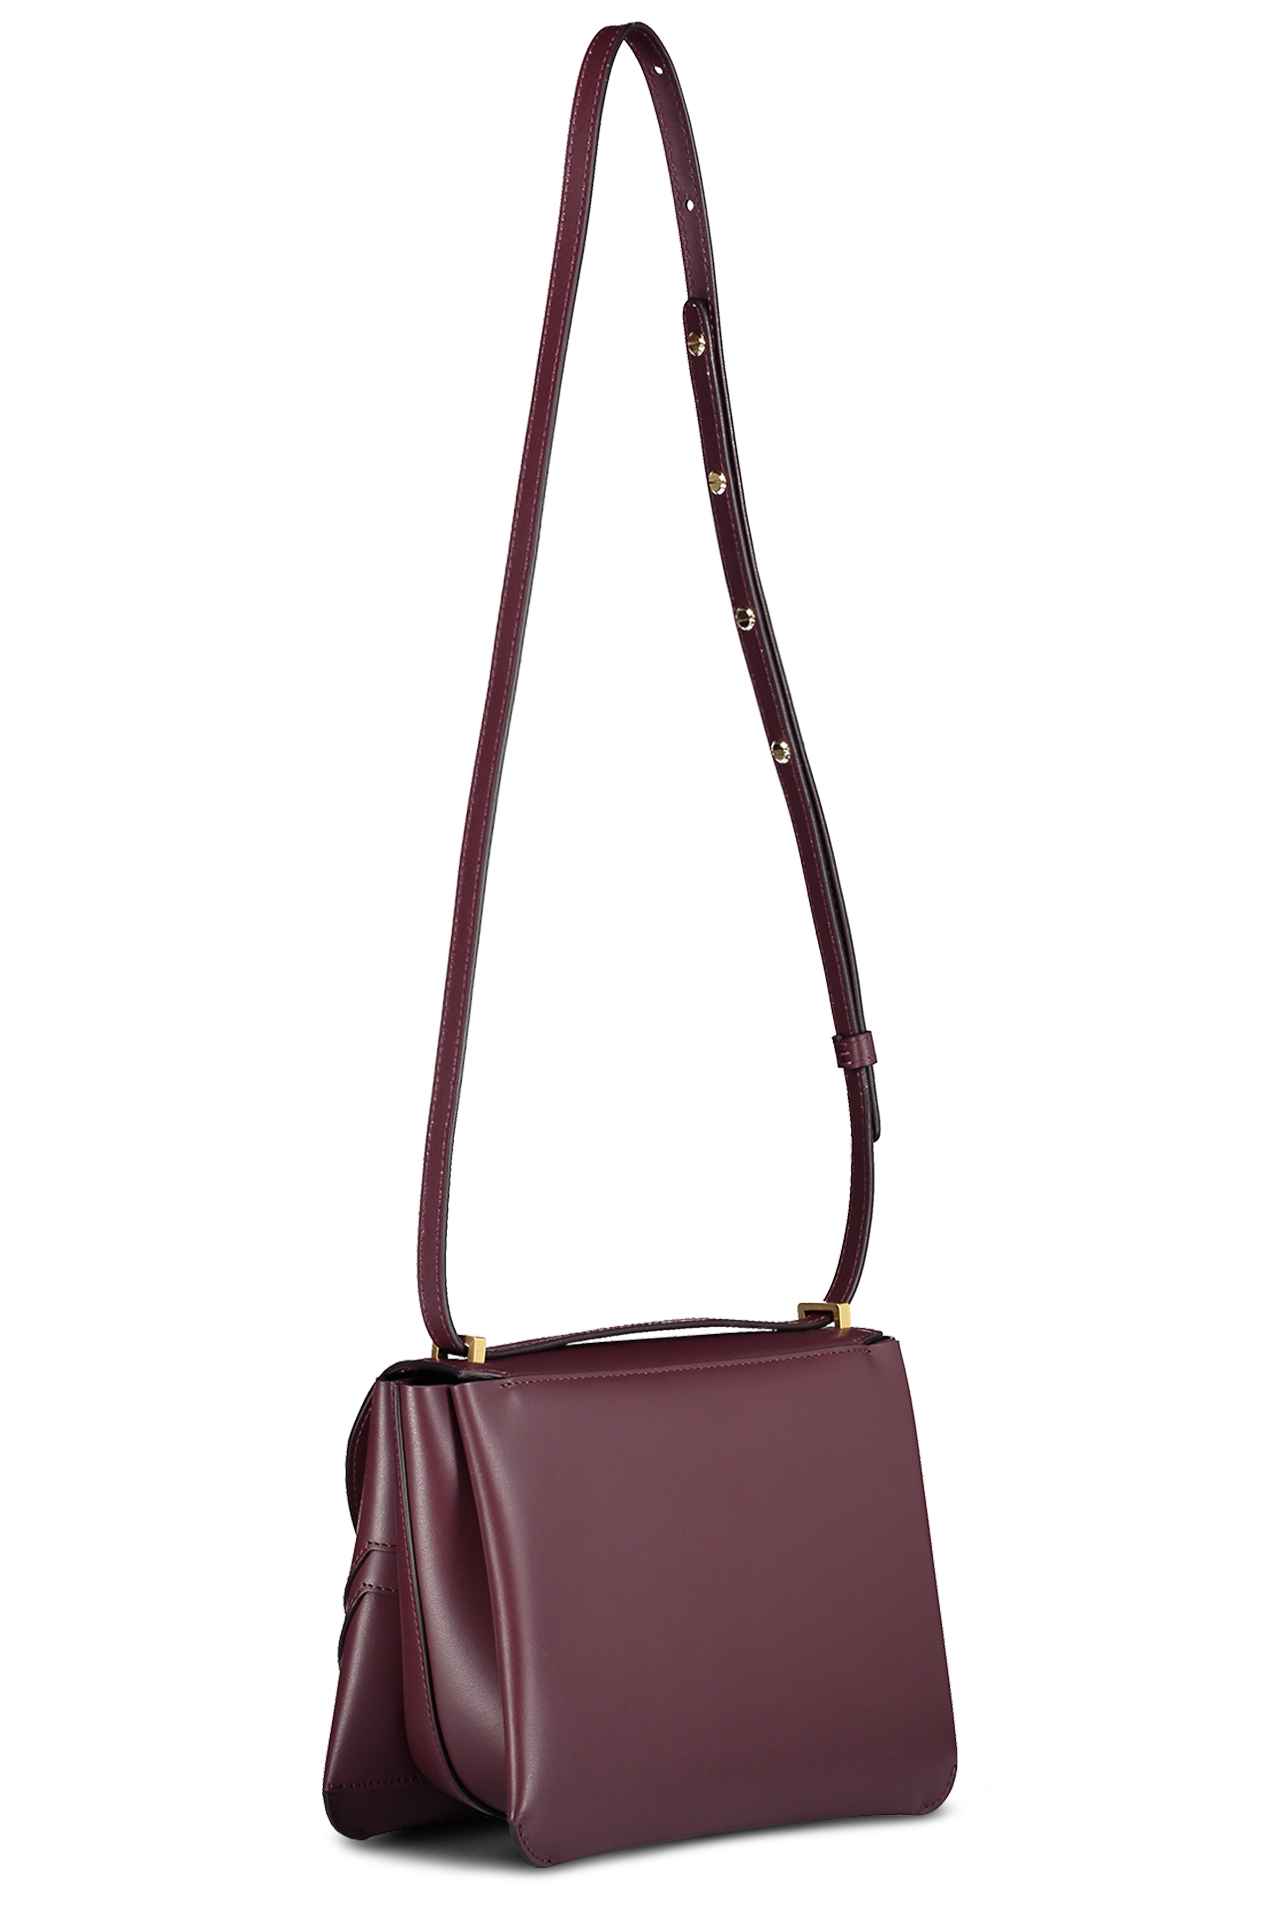 Back angled view image of Wandler Luna Arch Bag Calf Leather Wine